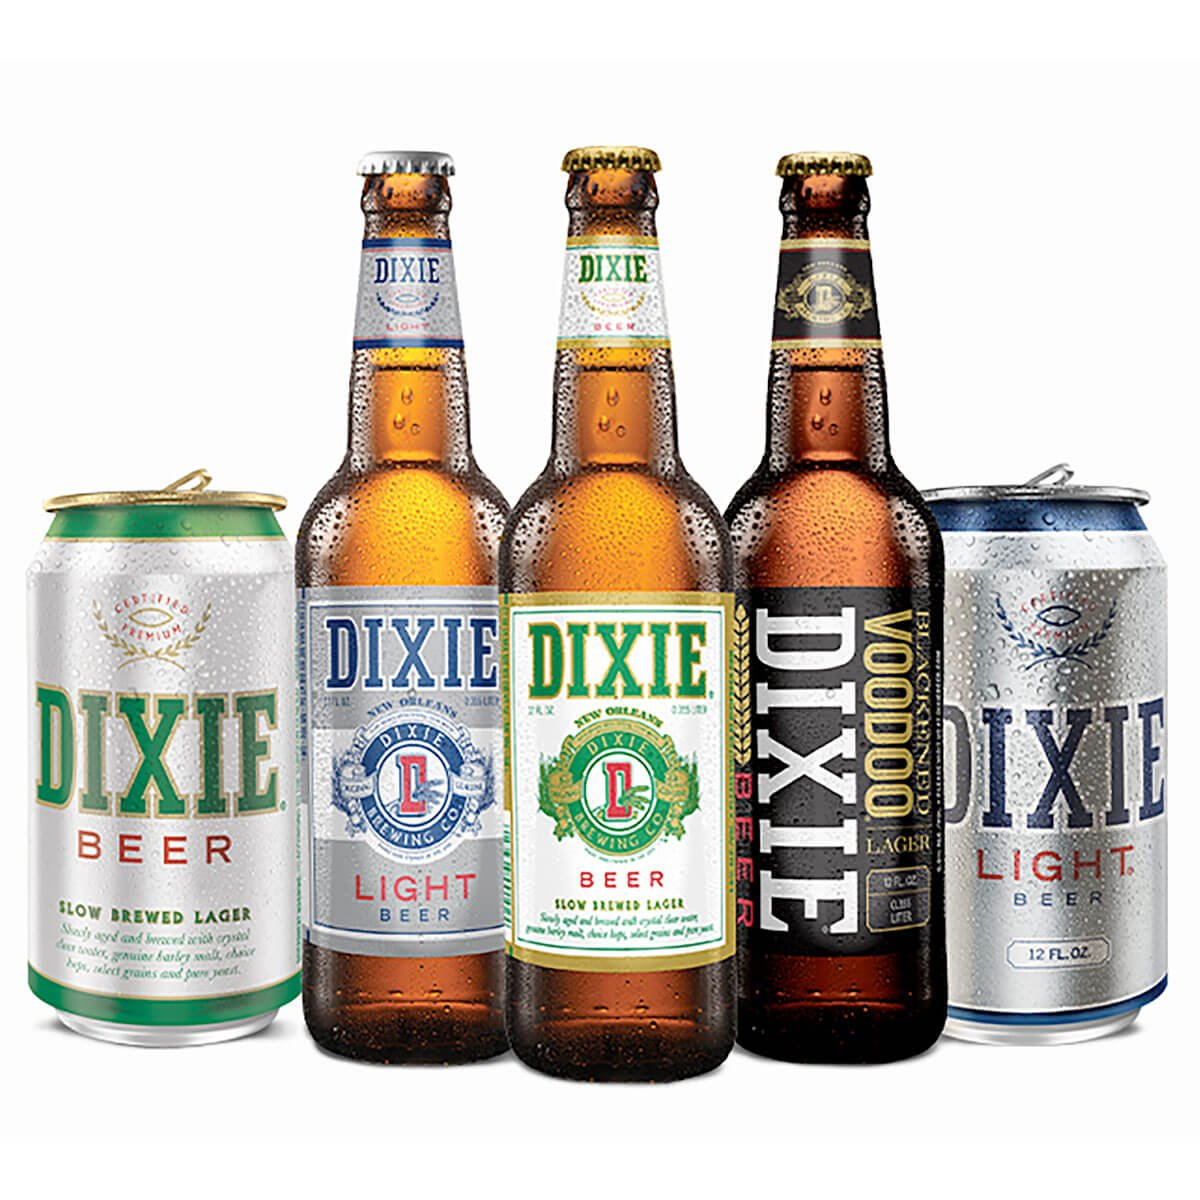 Lineup of bottled and canned beers offered by Dixie Brewing Company